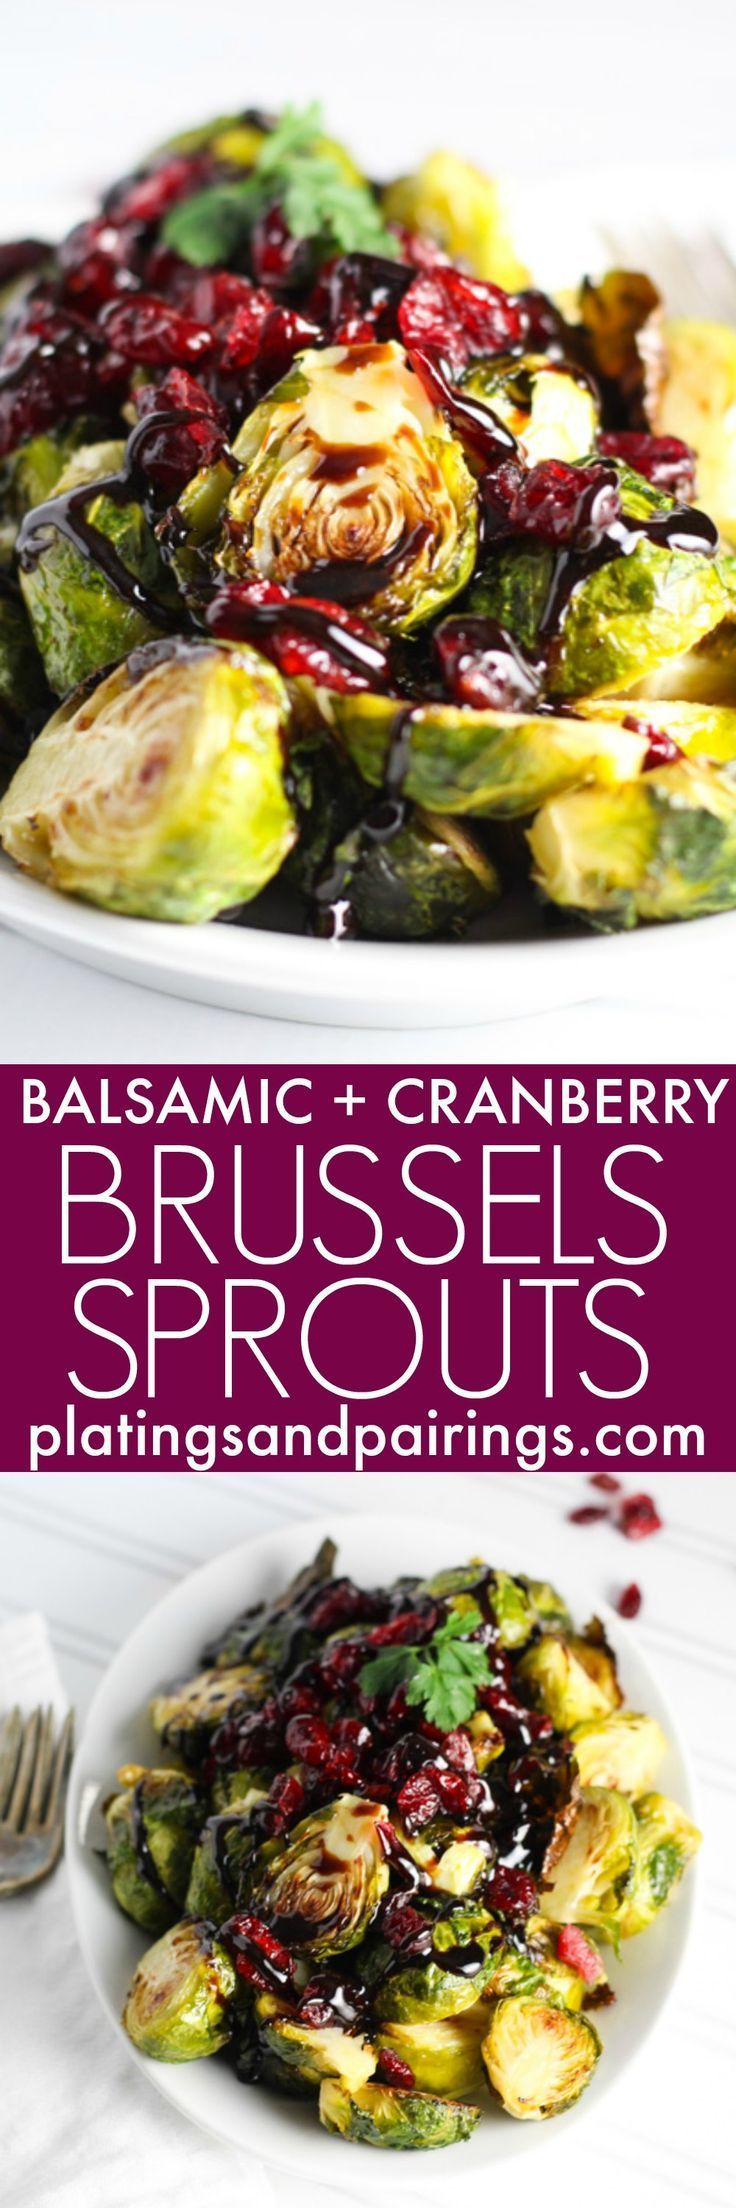 These Roasted Brussels Sprouts with Cranberries and Balsamic Reduction make a simple and elegant side dish that both kids and adults love! | http://platingsandpairings.com